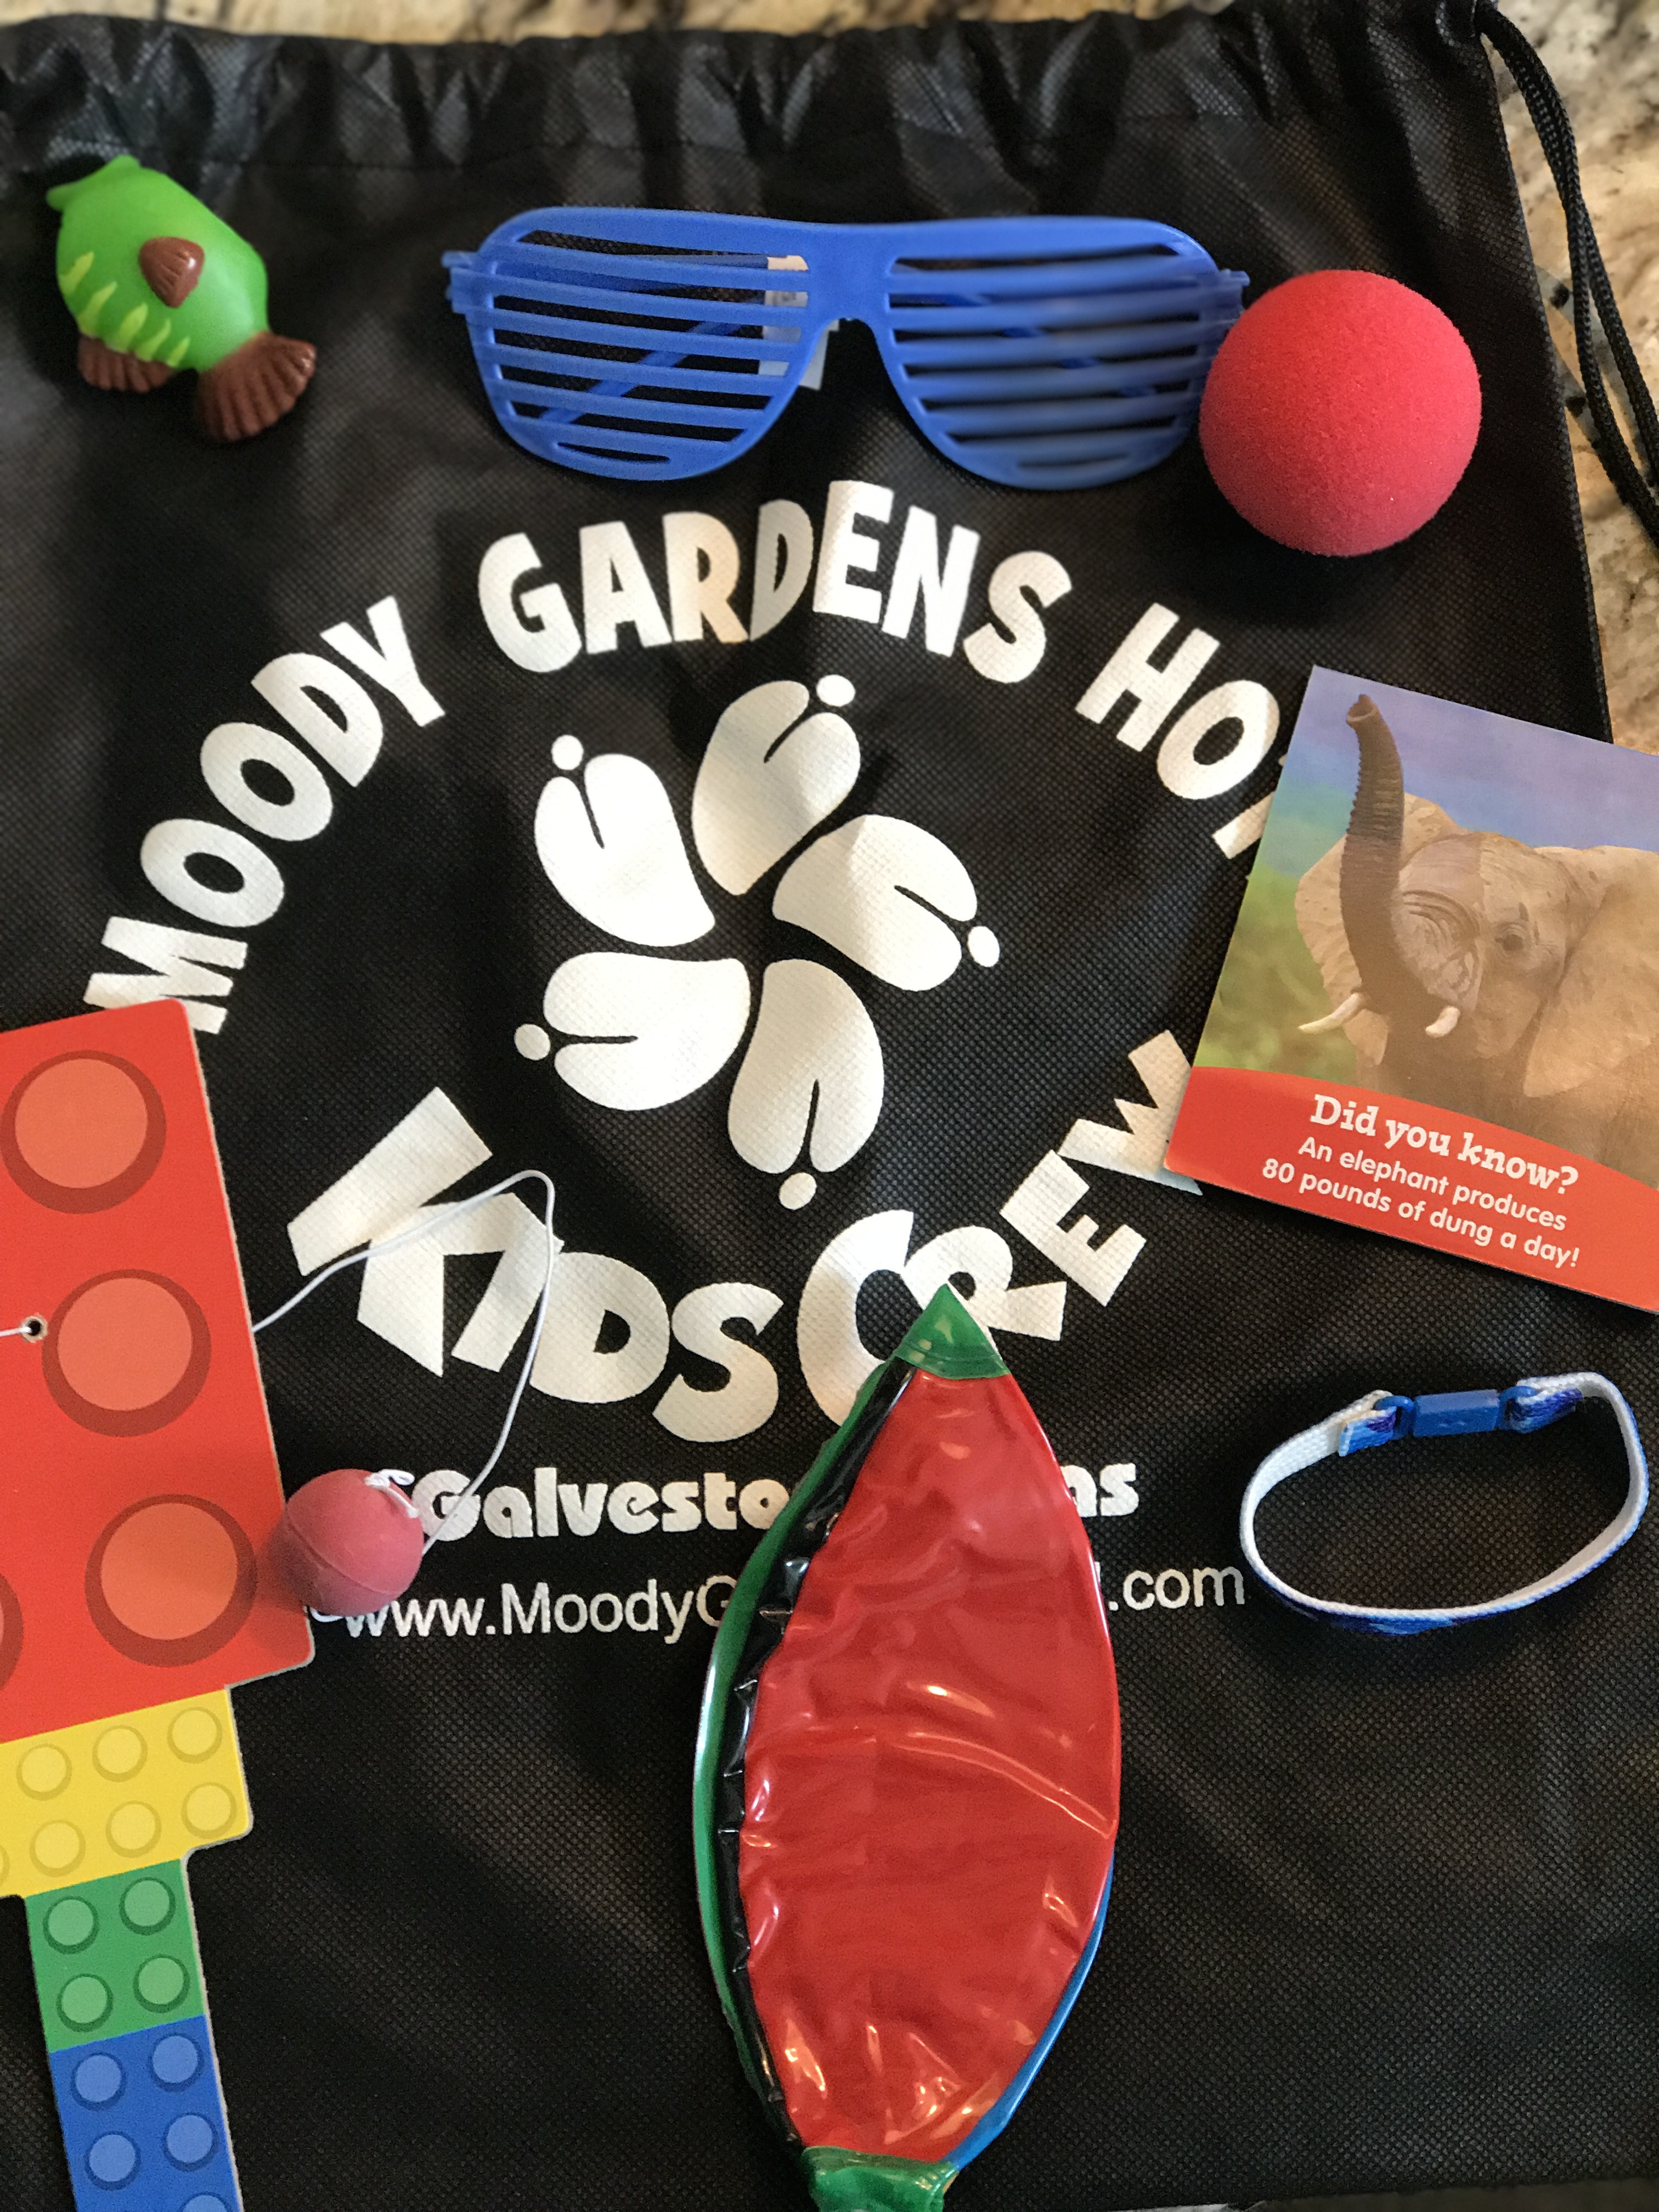 During Check In The Kids Were Each Given A Moody Gardens Backpack With  Toys, Sunglasses, Notepads And Bracelets For Us. The Bracelets Are Given To  Parents ...